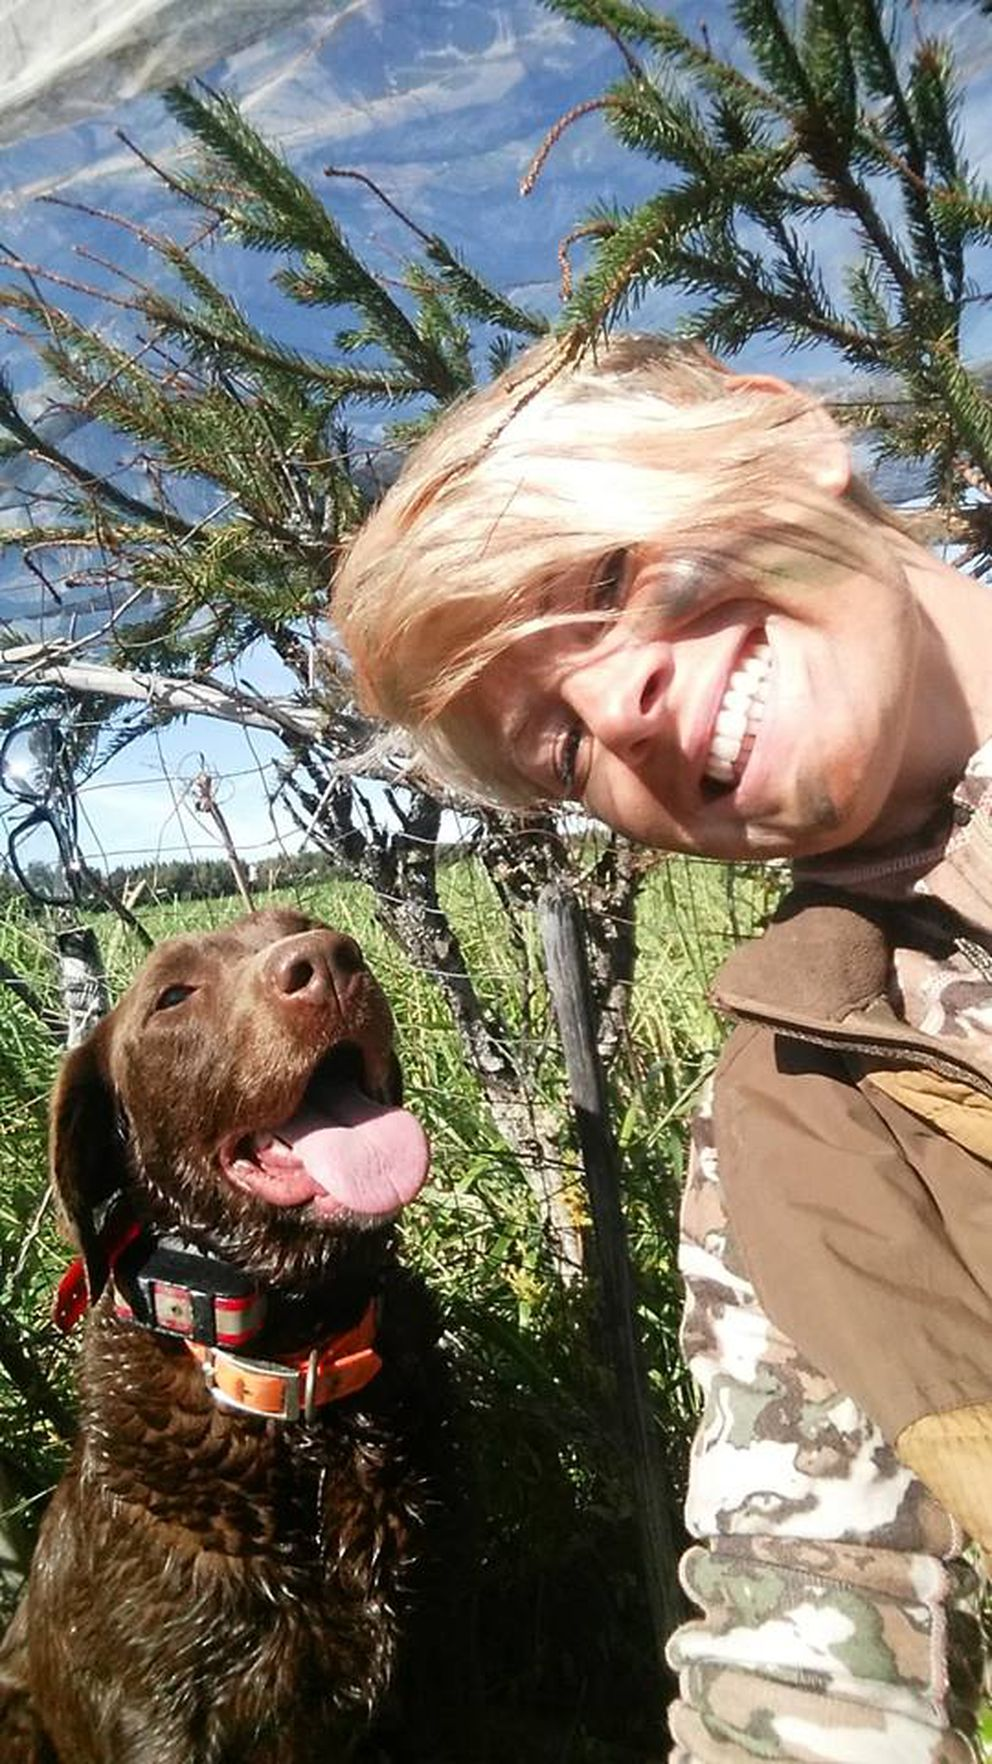 Christine Cunninghamtakes a selfie with her dog Cheyenne during opening day of this year's waterfowl season. (Photo by Christine Cunningham)